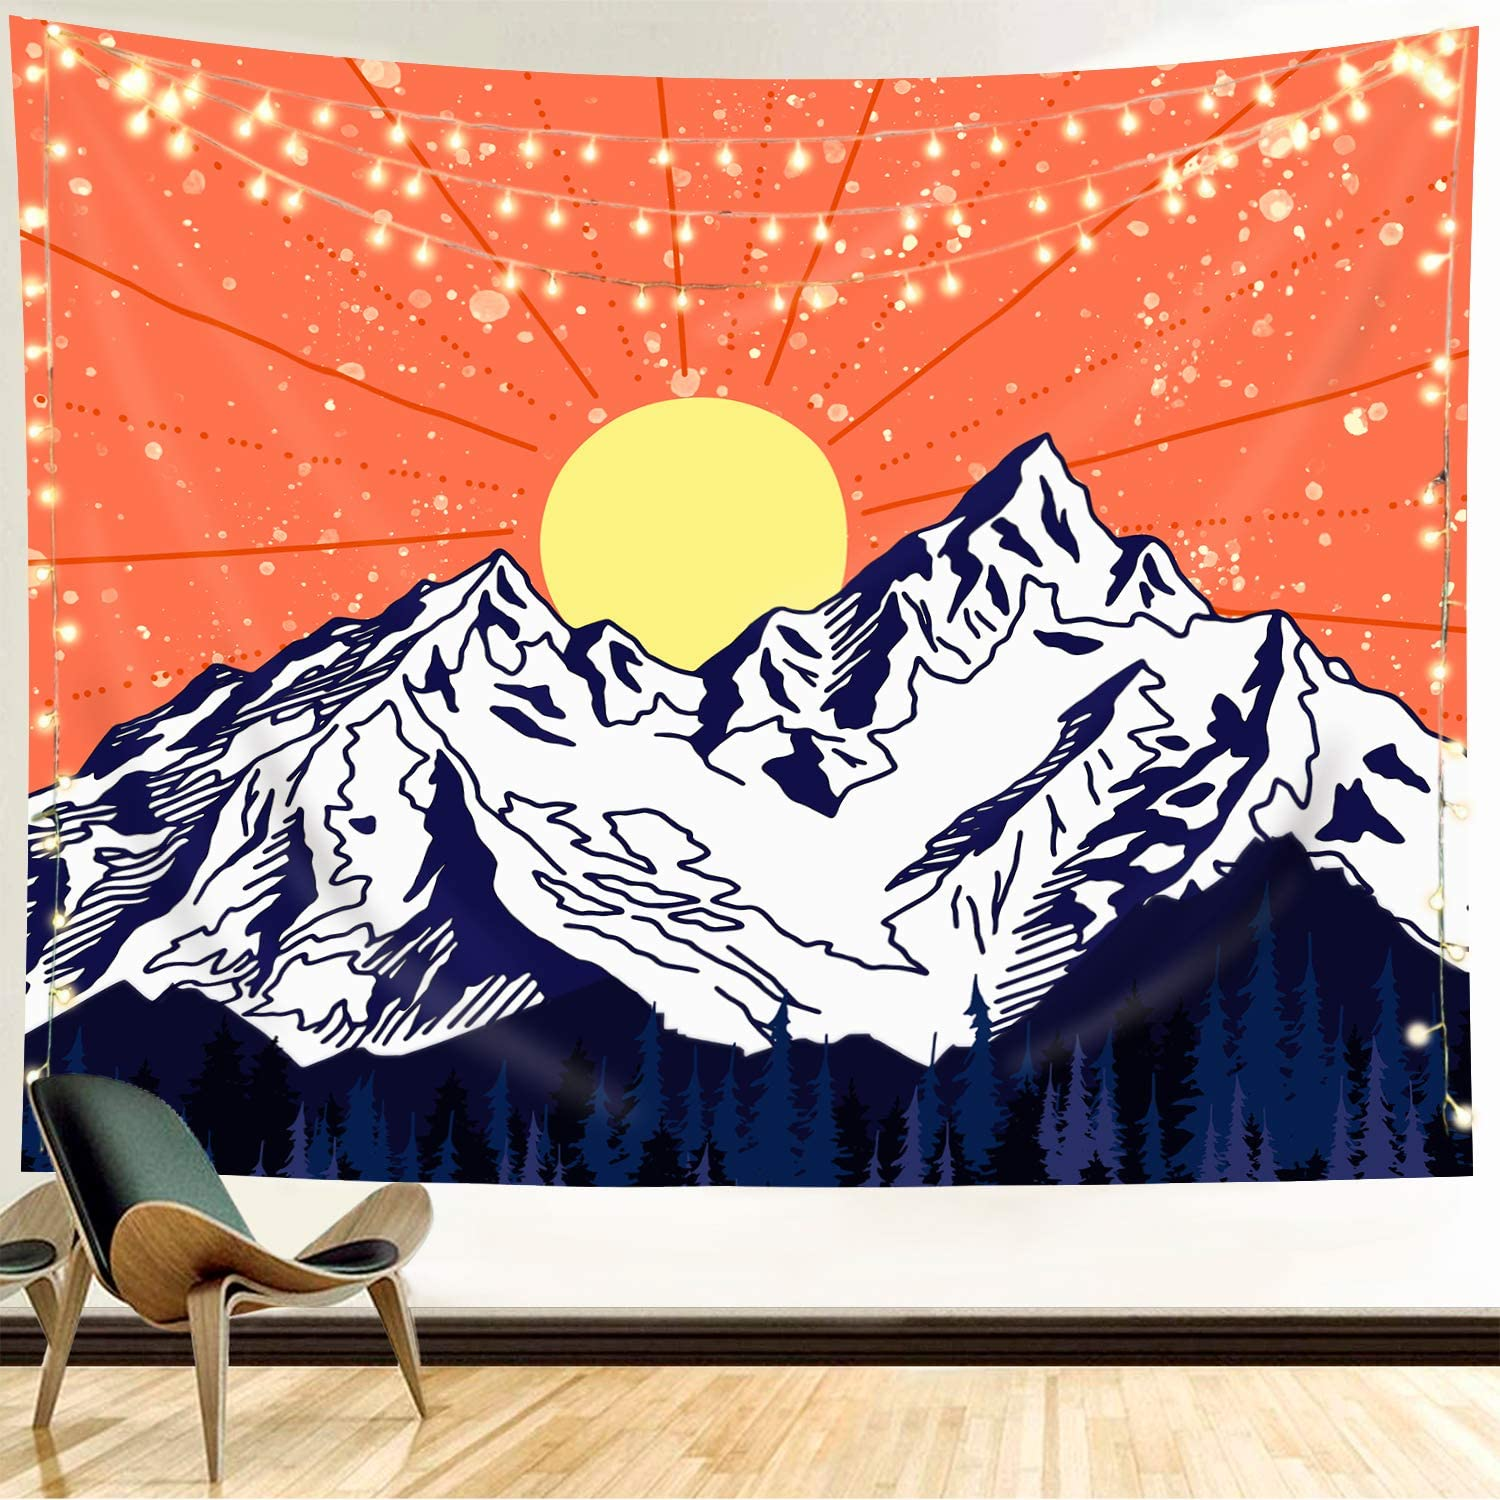 Funeon Snow Mountain Tapestry Wall Hanging Cool Sun Tapestry Nature Forest Tapestry for Bedroom Teen Girls Small Cute Landscape Blue White Orange Tapestry for Wall Indie Room Decor Aesthetic 51x60inch